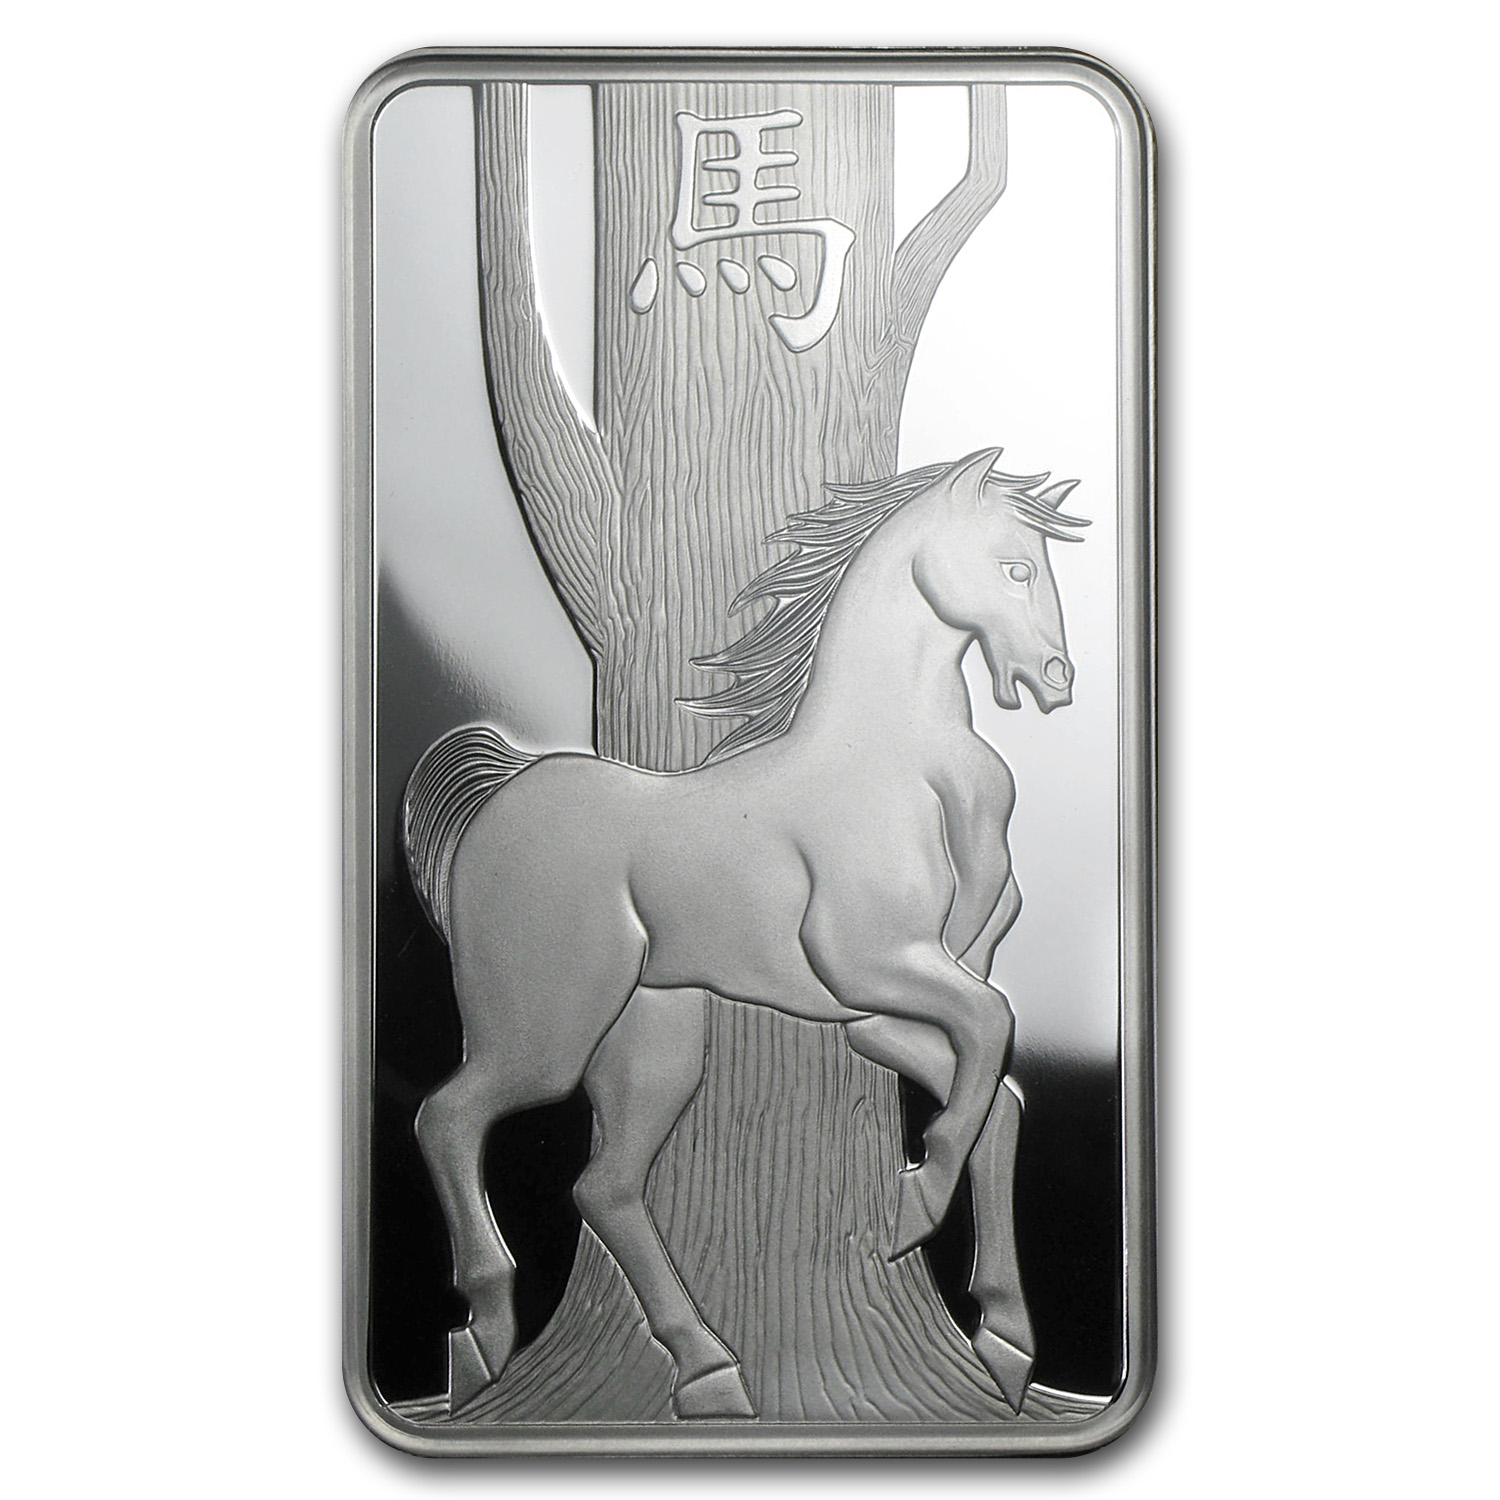 100 gram Silver Bars - Pamp Suisse (Year of the Horse)